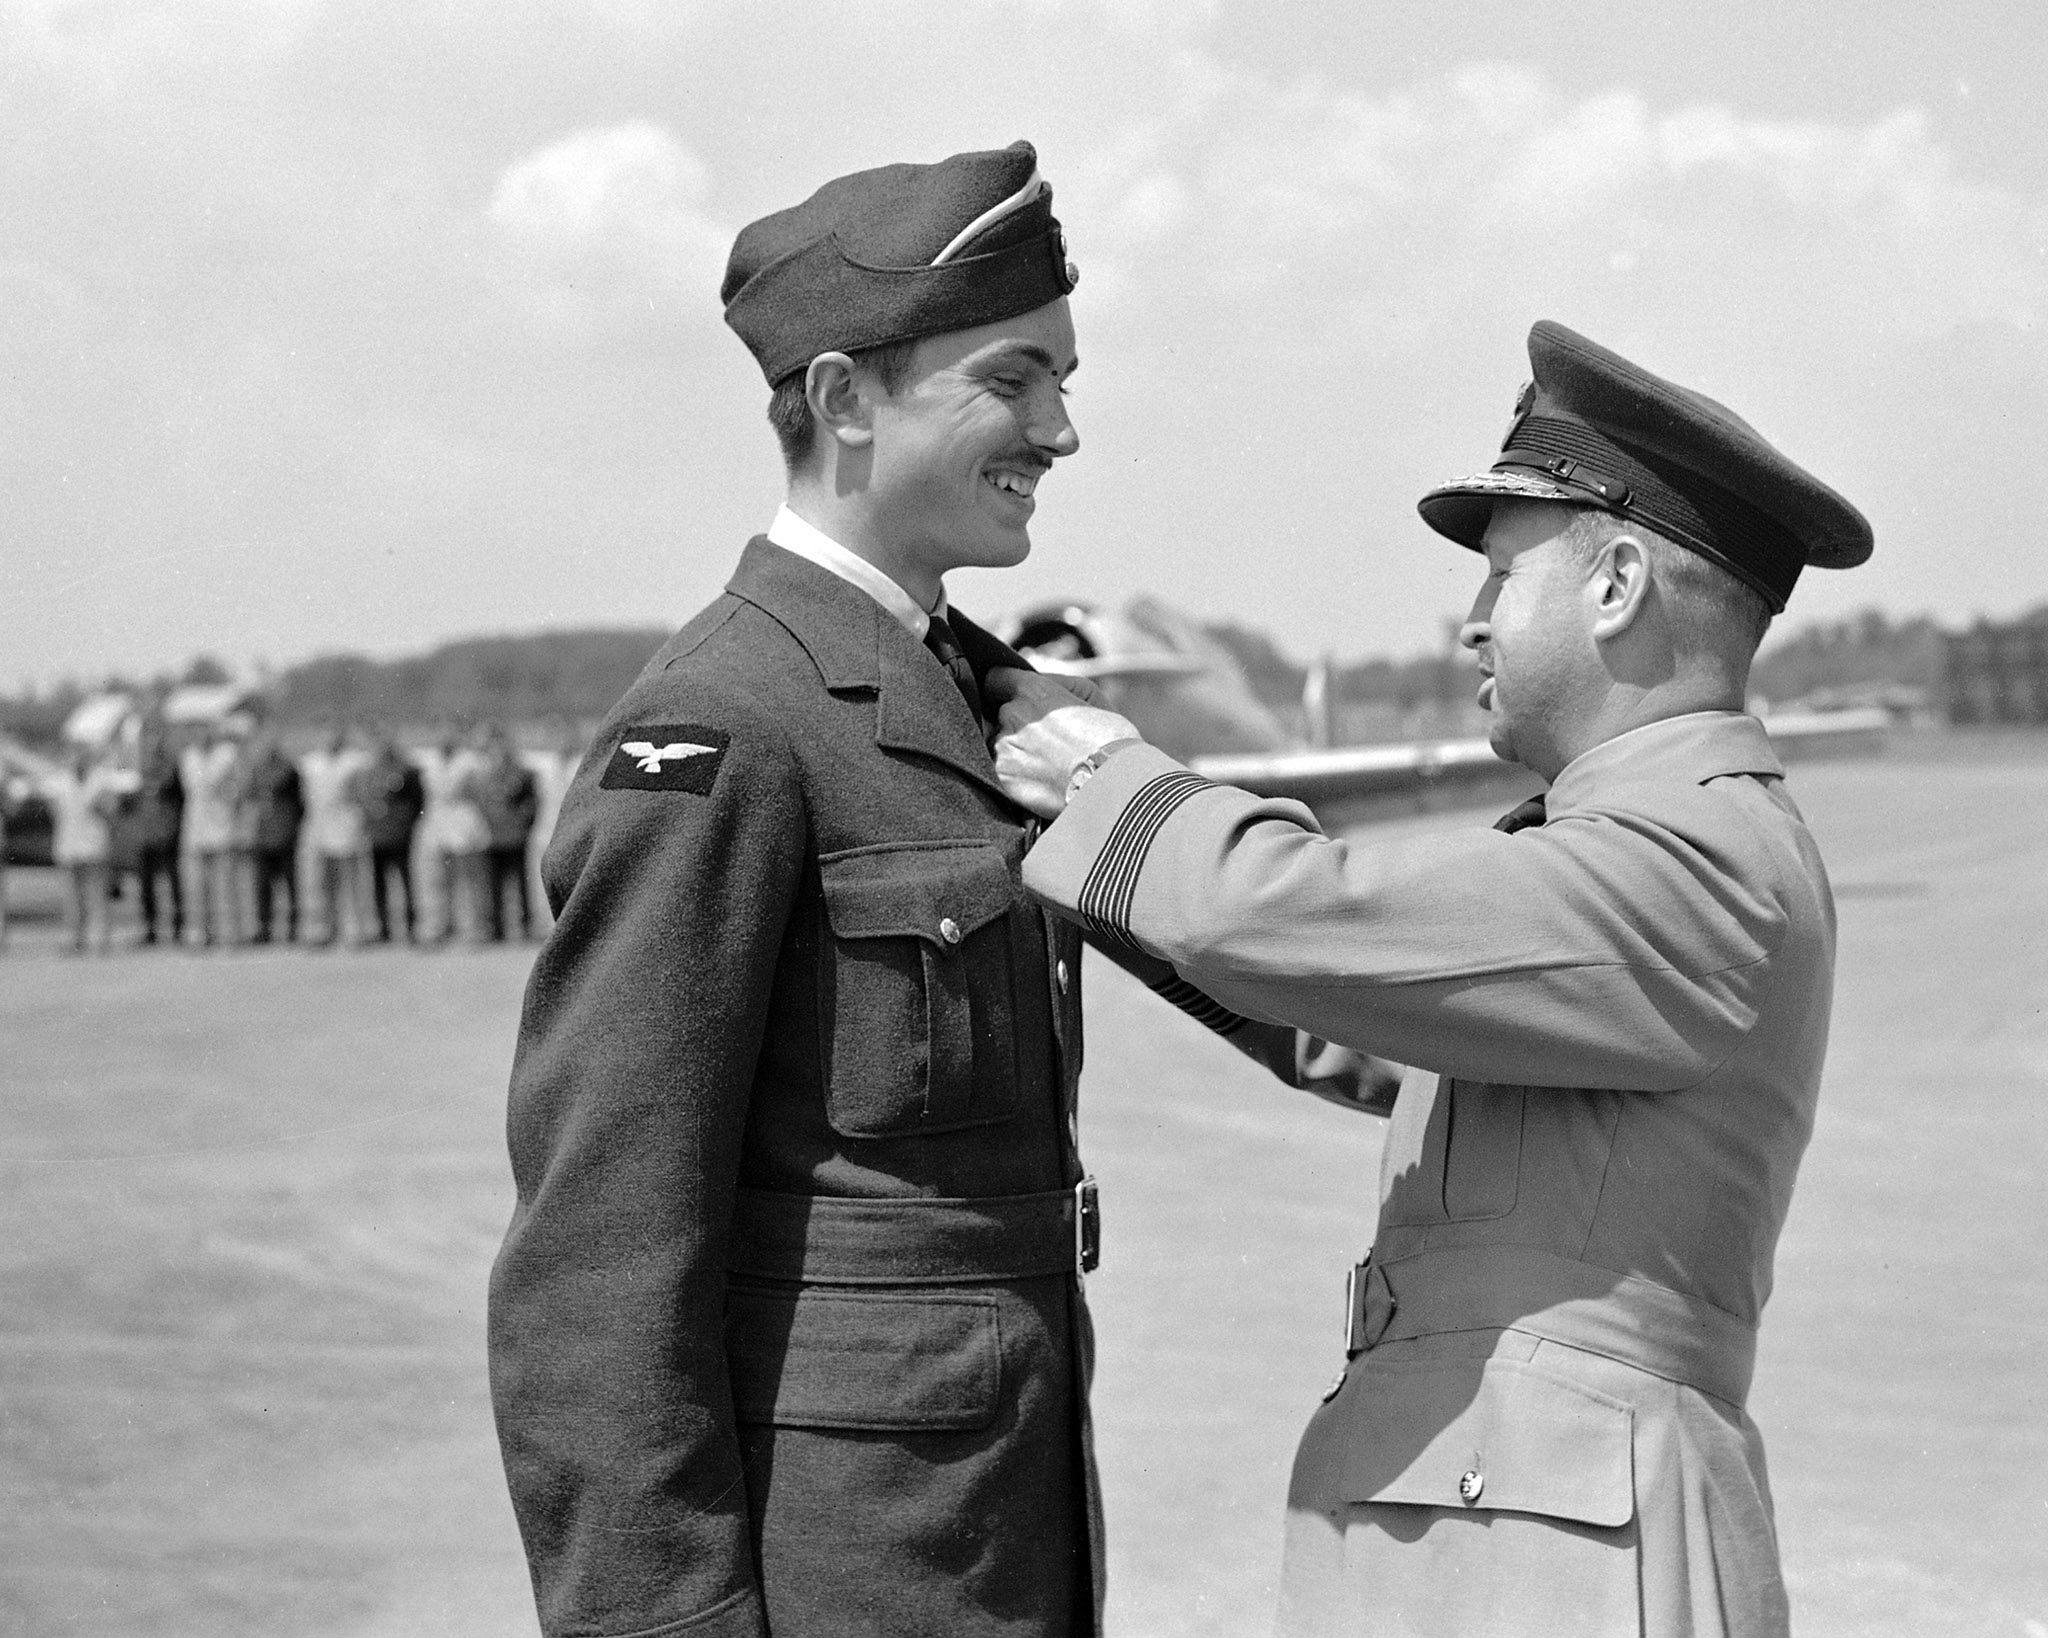 "Group Captain Wilfred A. Curtis presents pilot wings to Pilot Officer John Gillespie Magee, Jr., author of ""High Flight"". PHOTO: DND Archives, PL-2950"